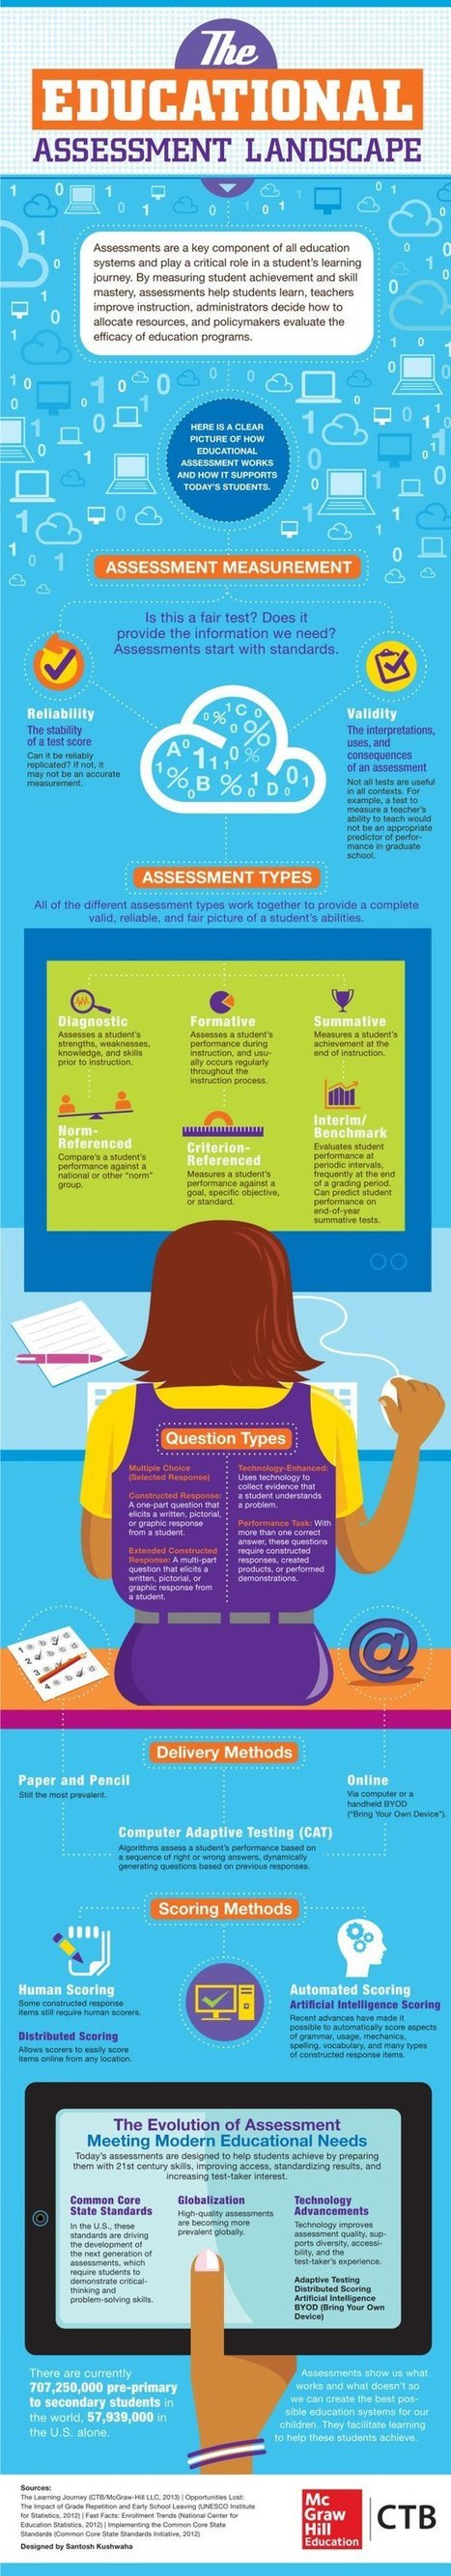 The Educational Assessment Landscape Infographic - e-Learning Infographics | Learning Technology, Pedagogy and Research | Scoop.it